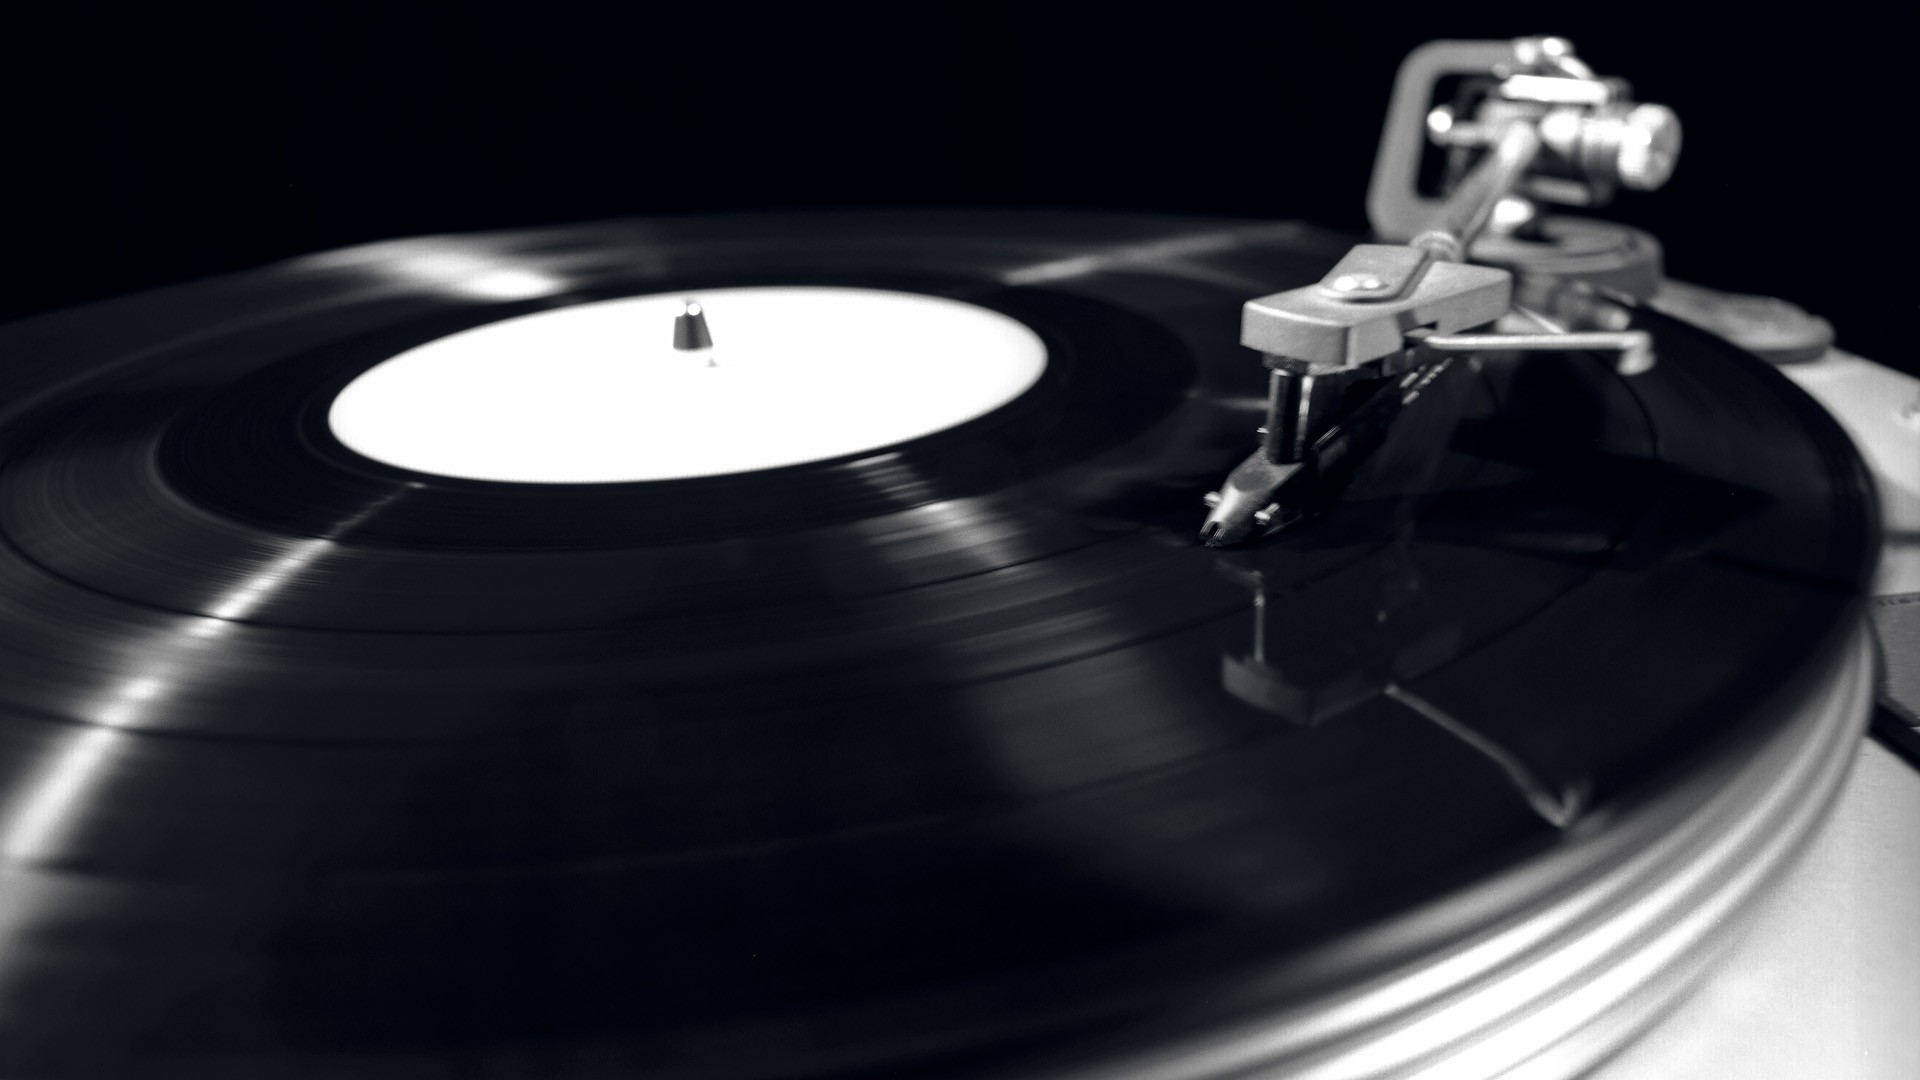 Monochrome Record Player   Wallpaper 37705 1920x1080